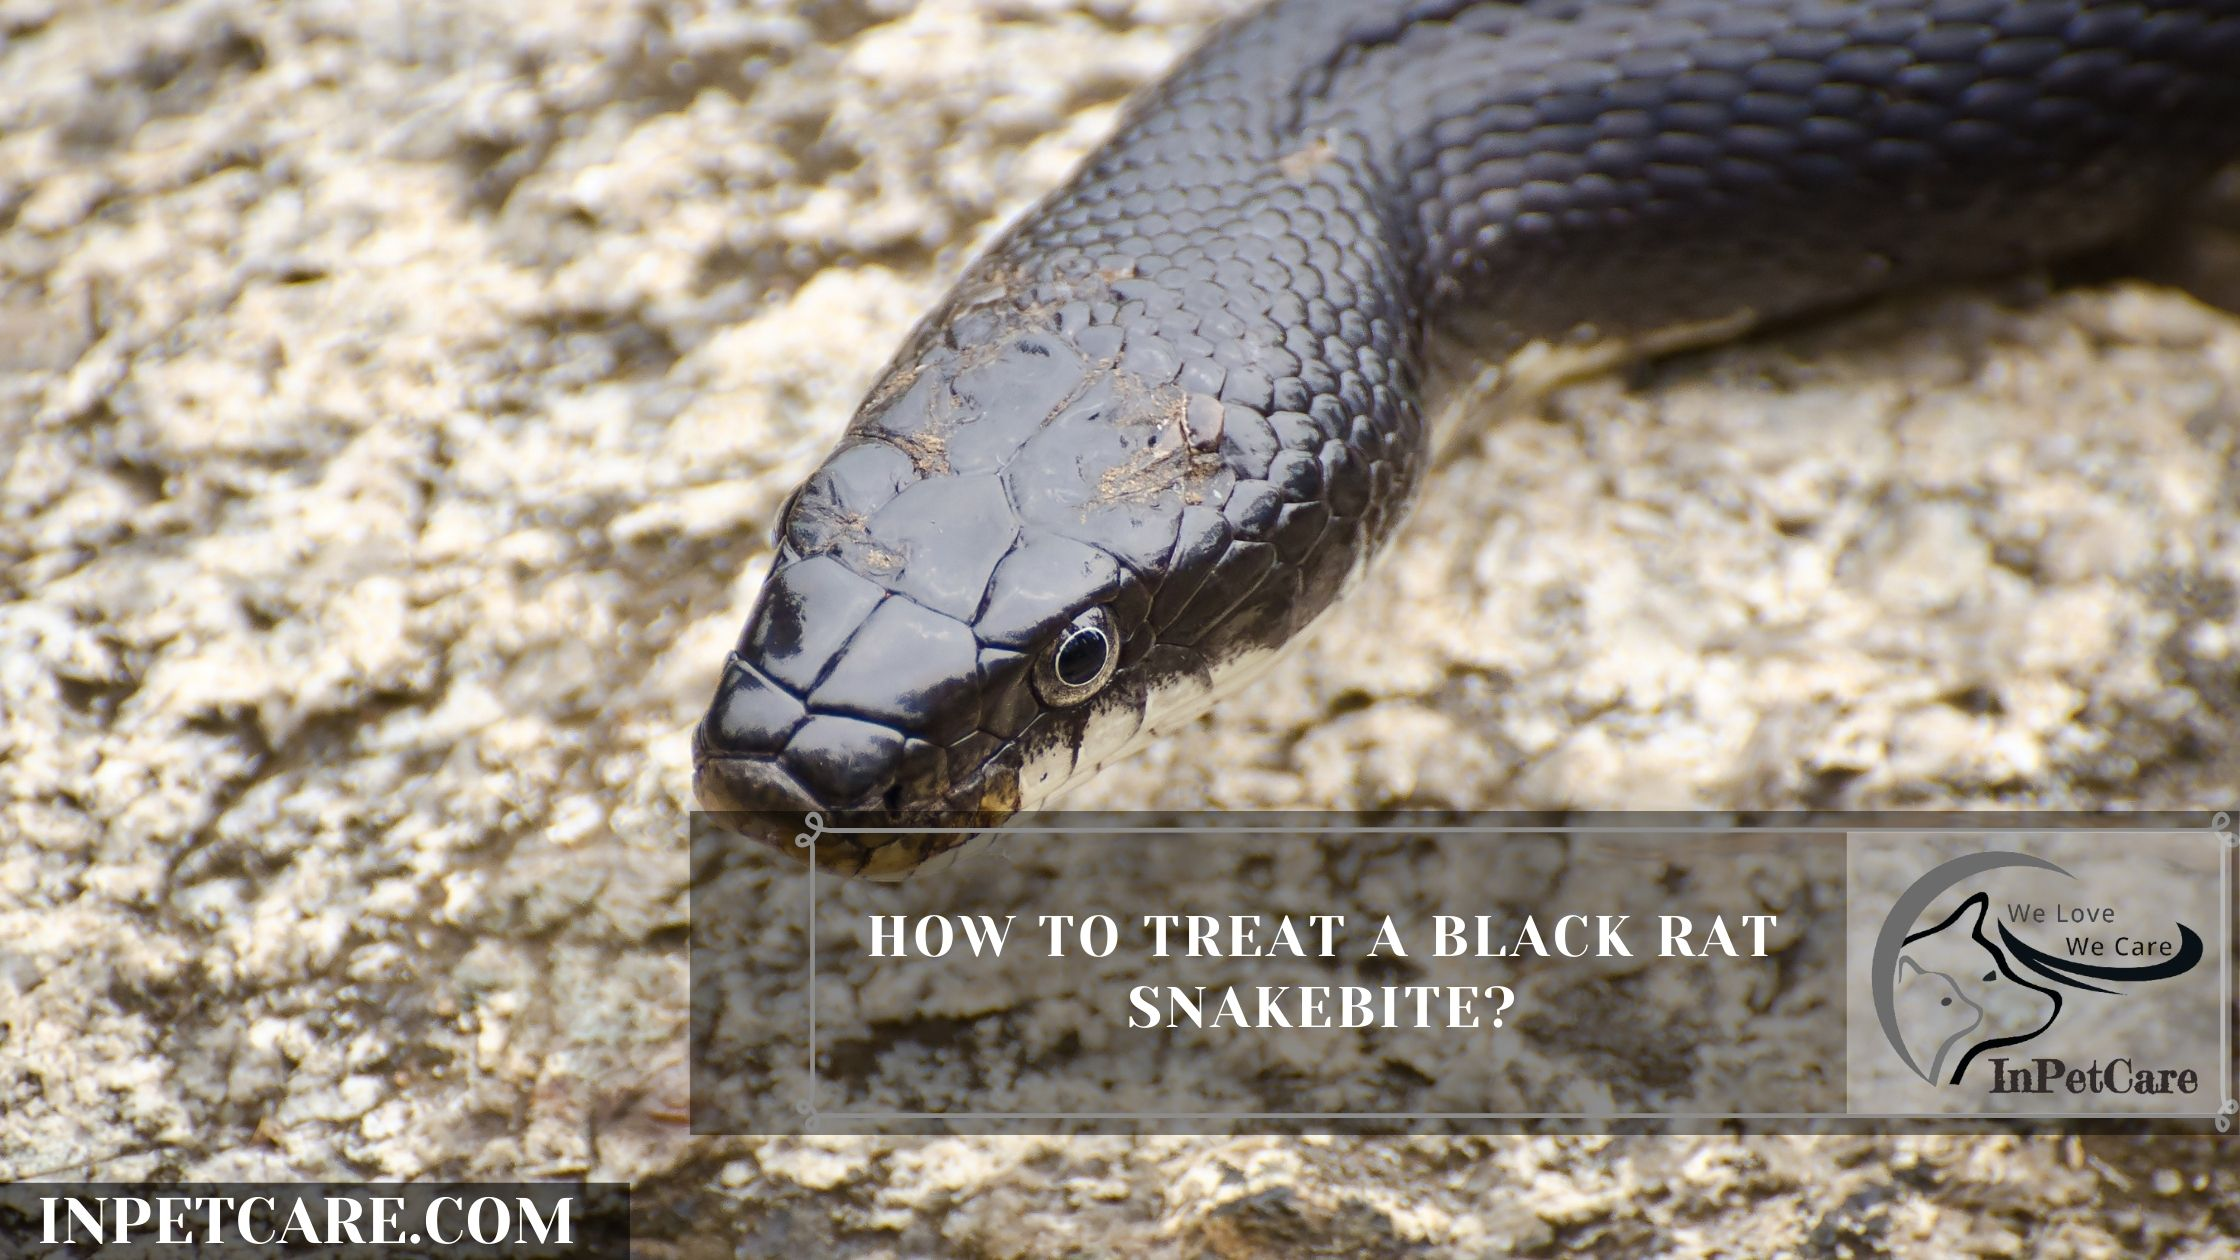 How To Treat A Black Rat Snakebite?